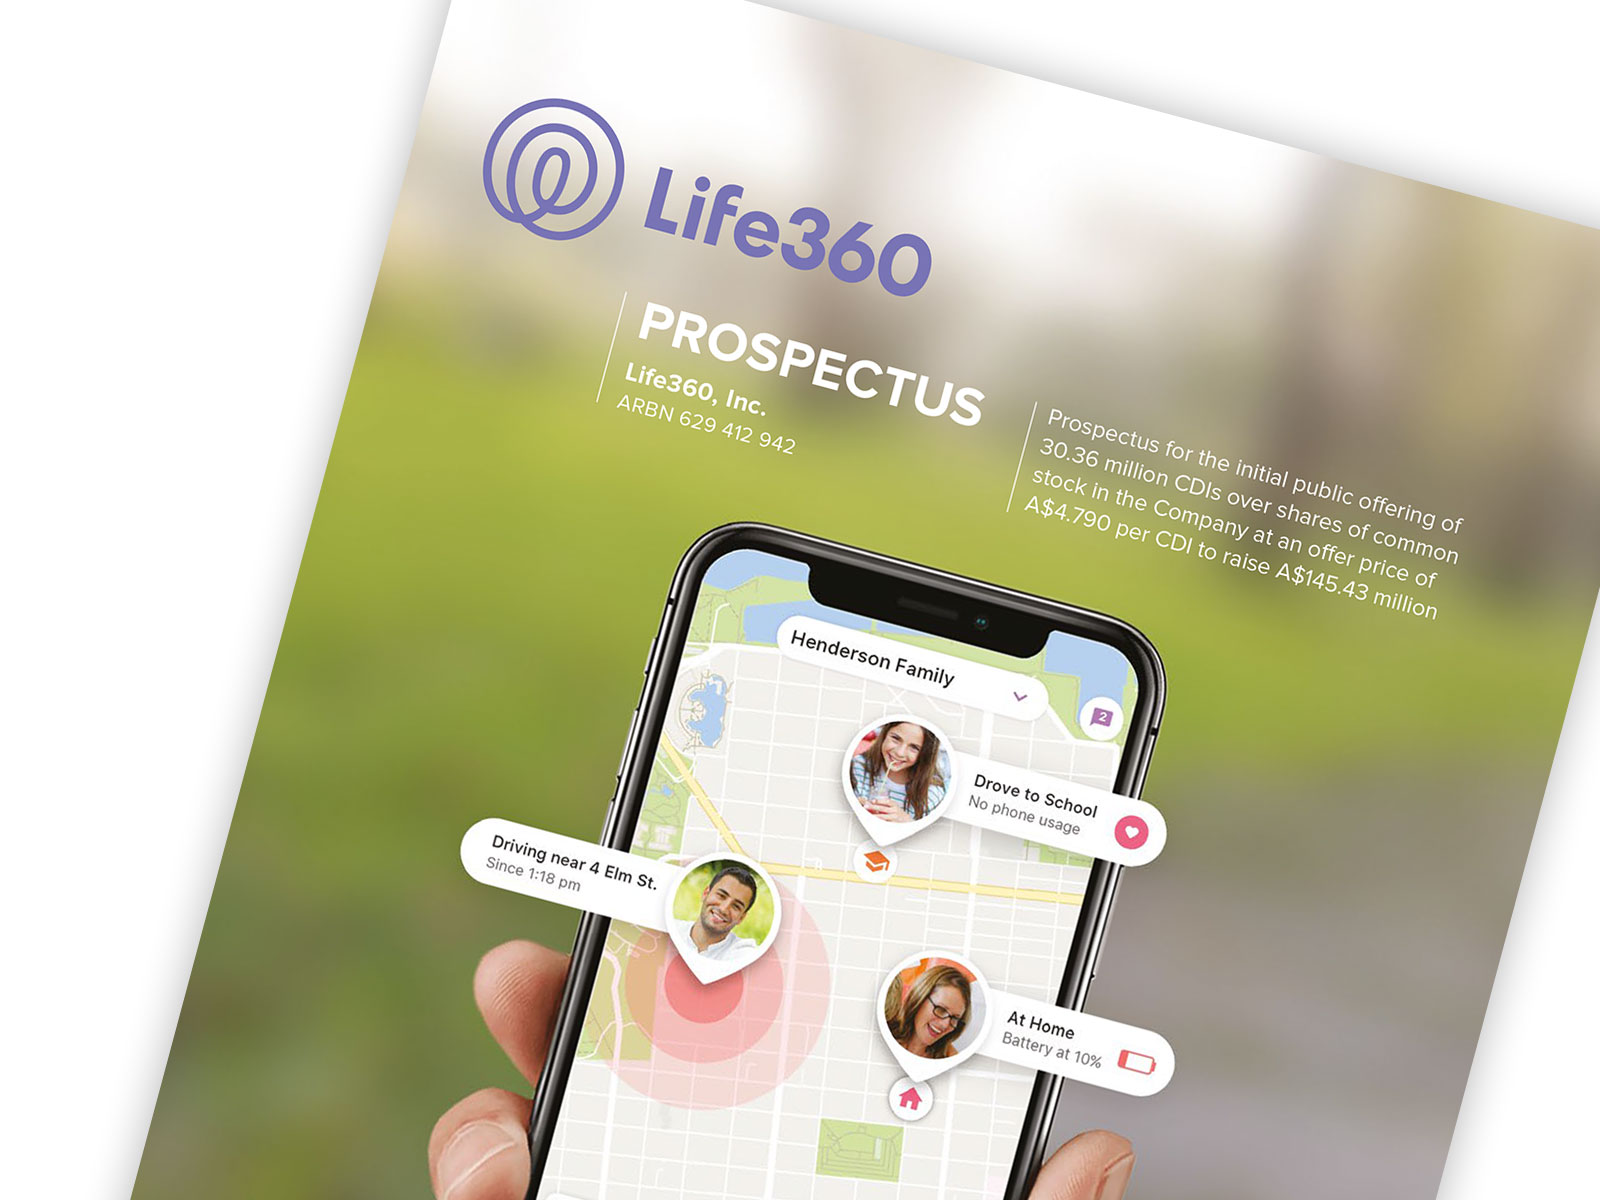 Life360 Products